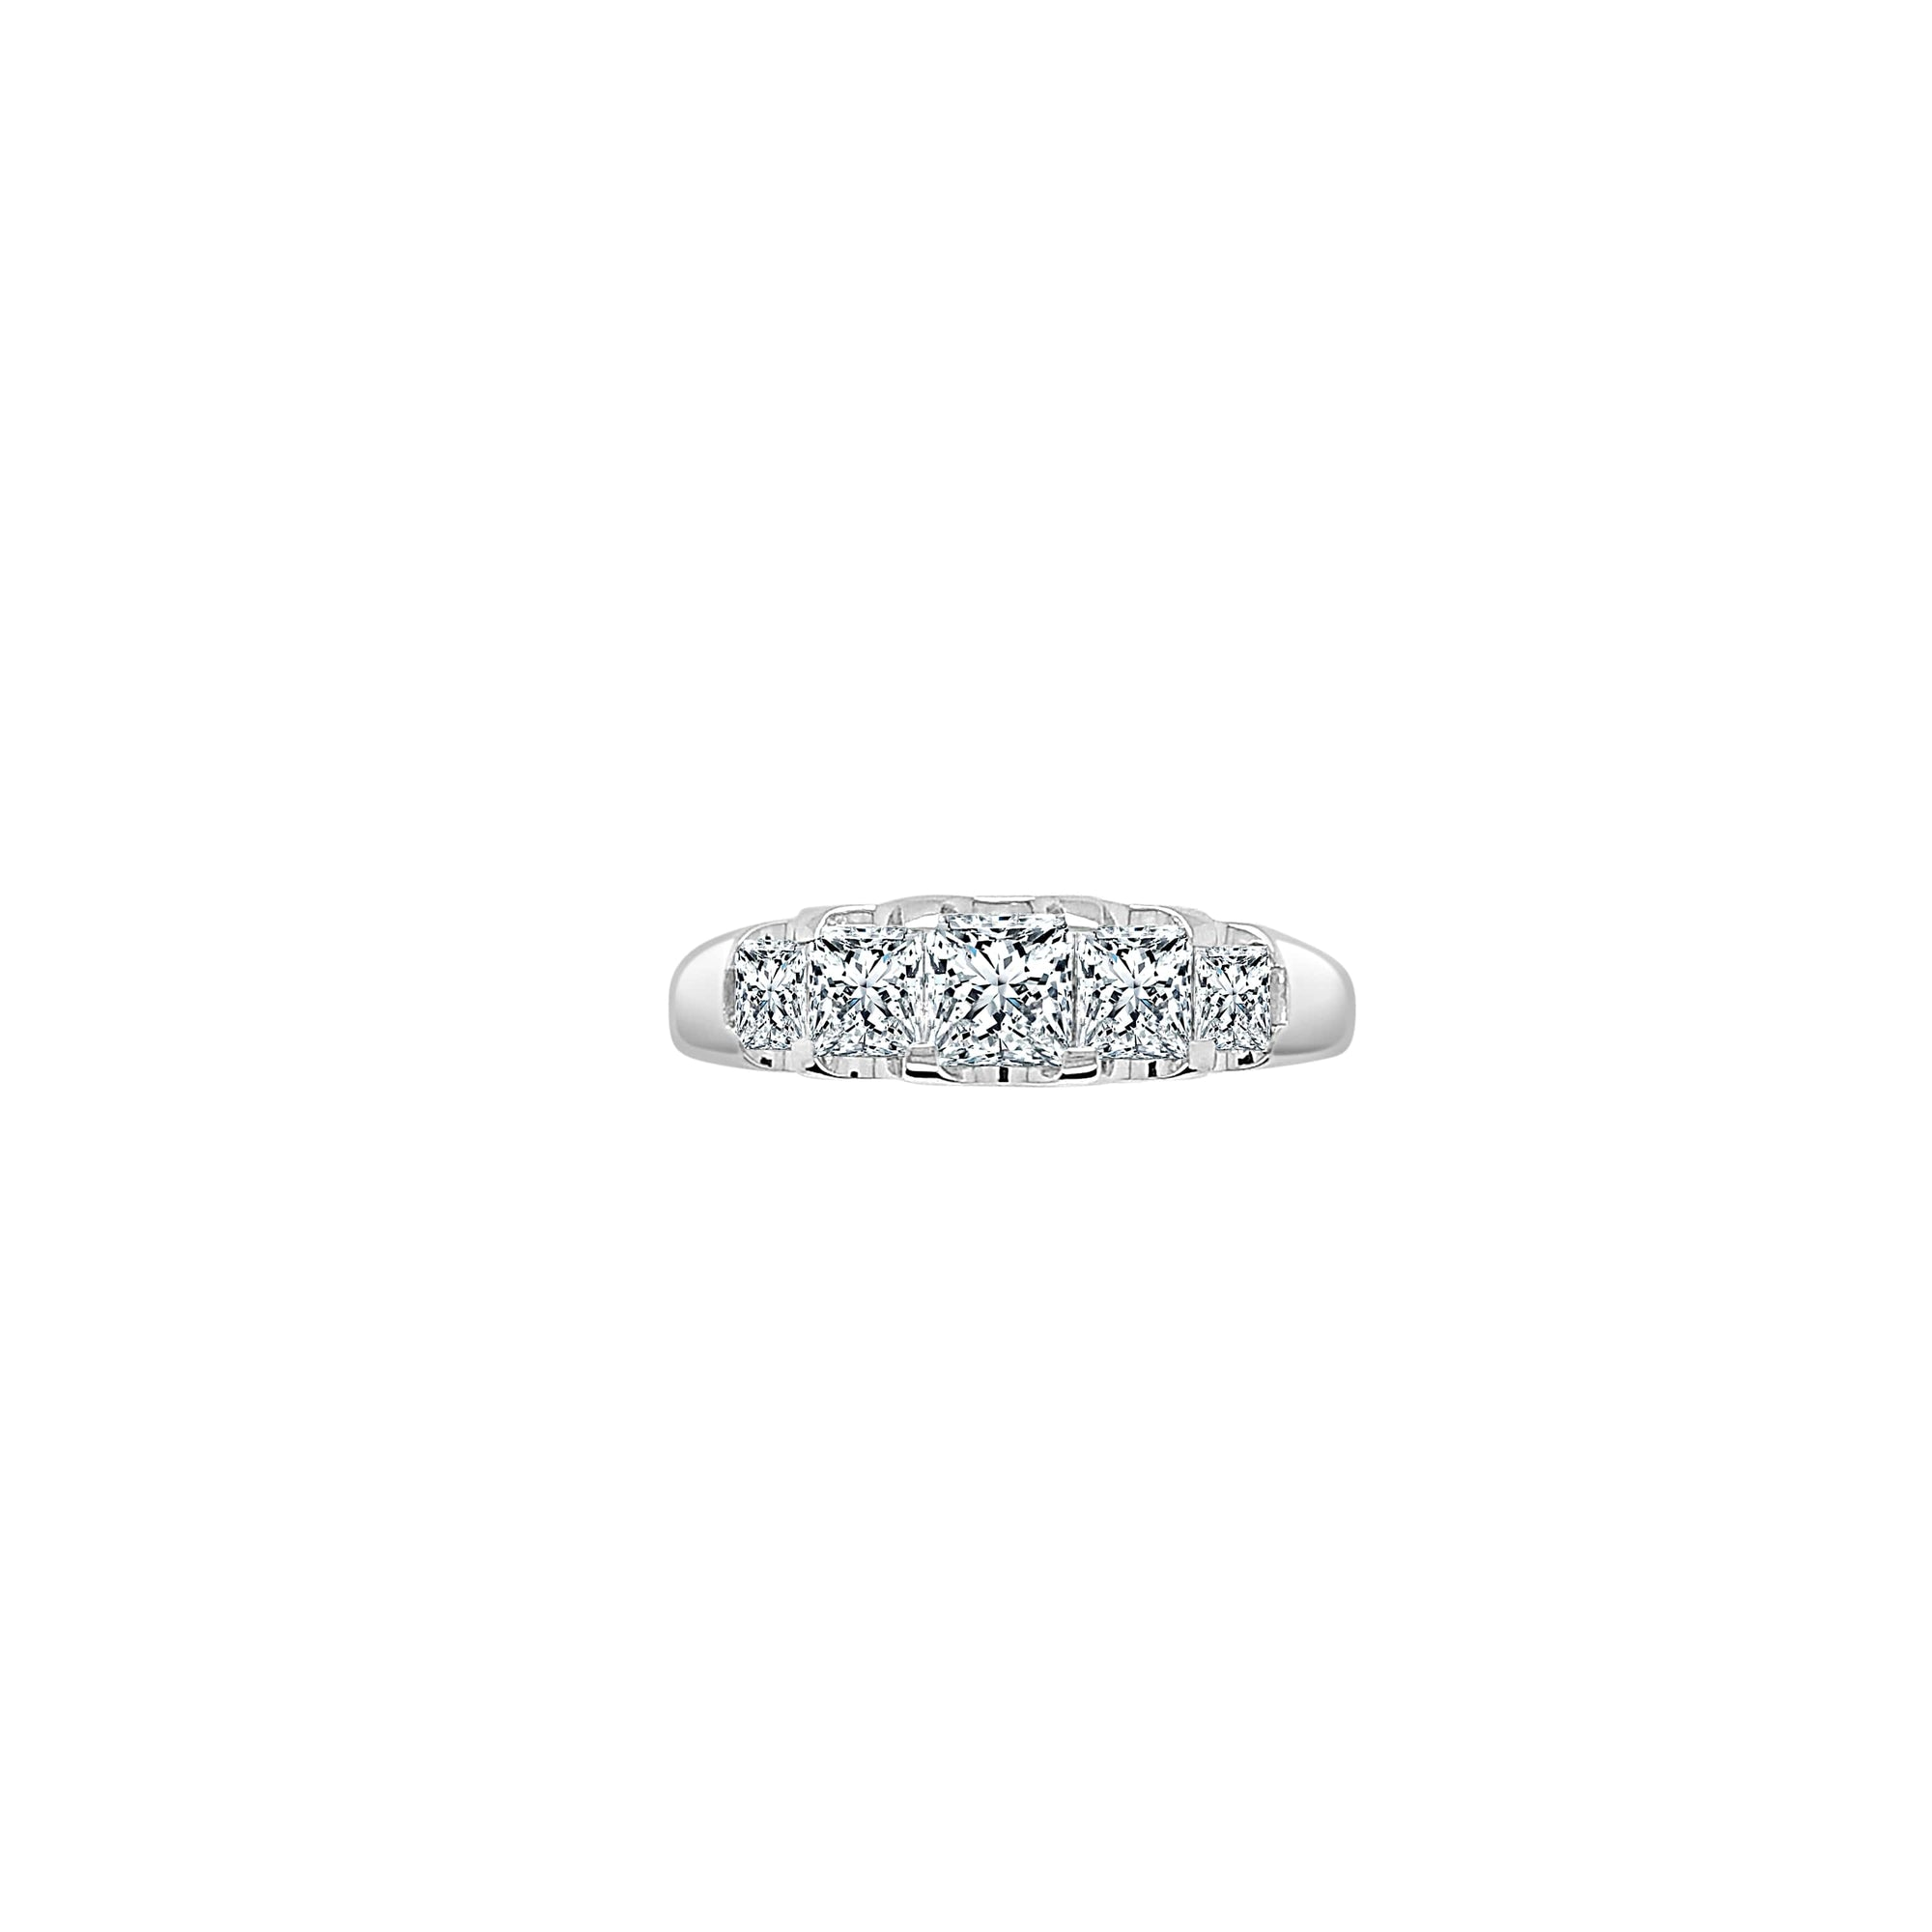 5 Stones Princess Diamond Band Made In 14K White Gold